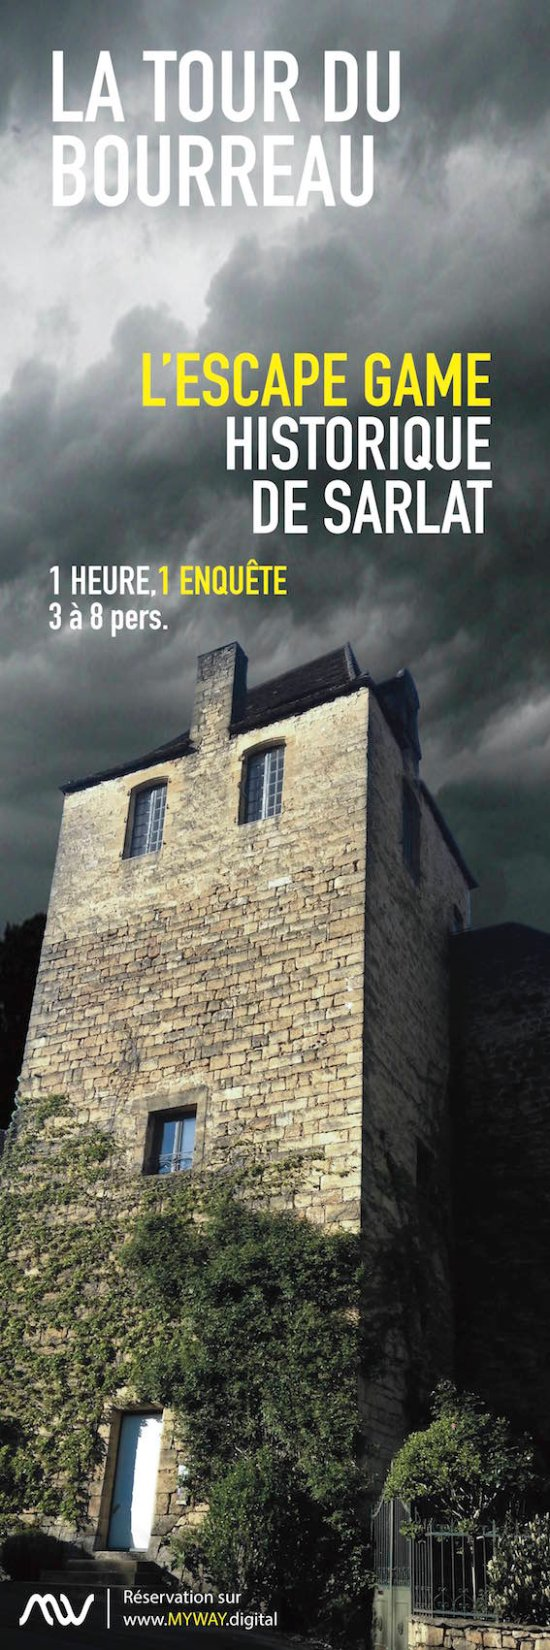 Escape Game Historique de Sarlat - la Tour du Bourreau